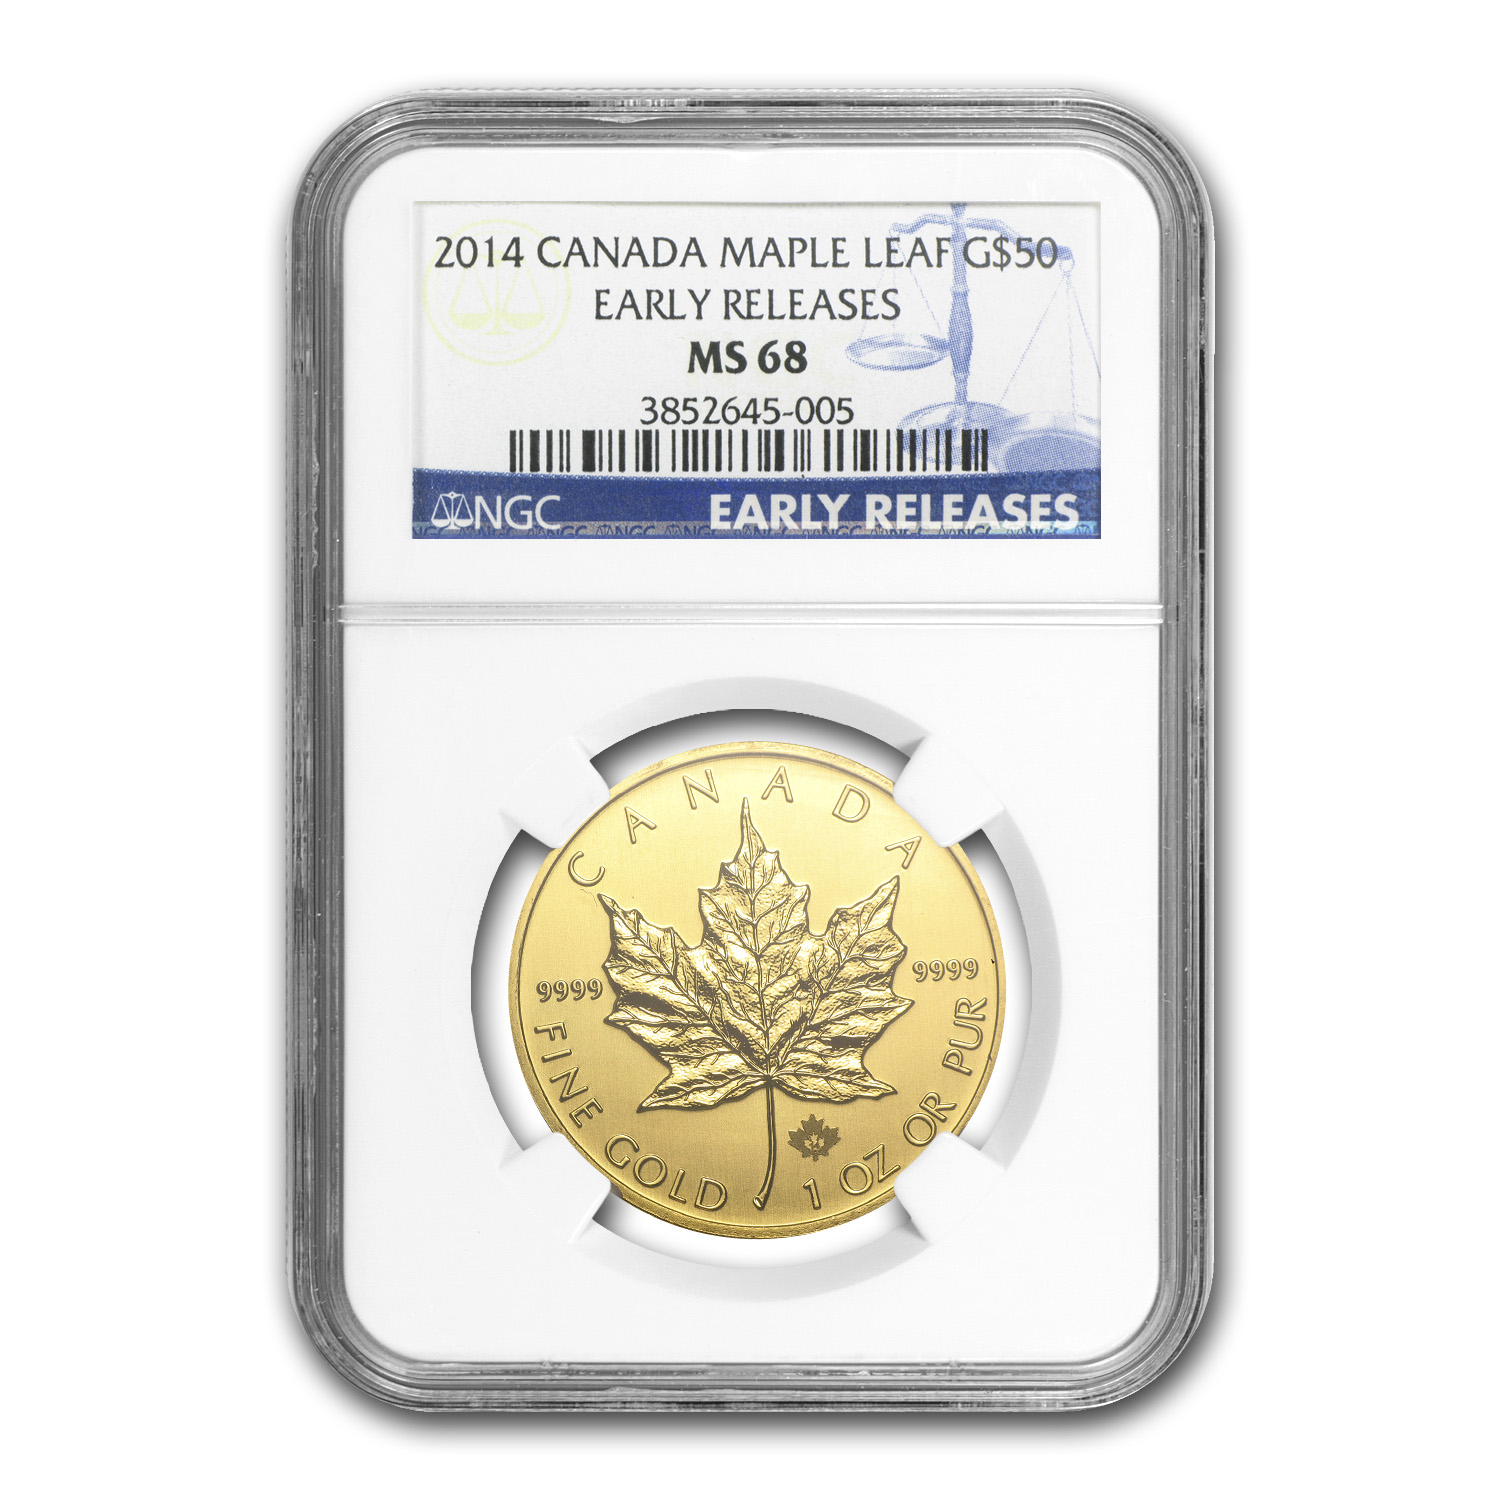 2014 1 oz Gold Canadian Maple Leaf MS-68 NGC Early Releases